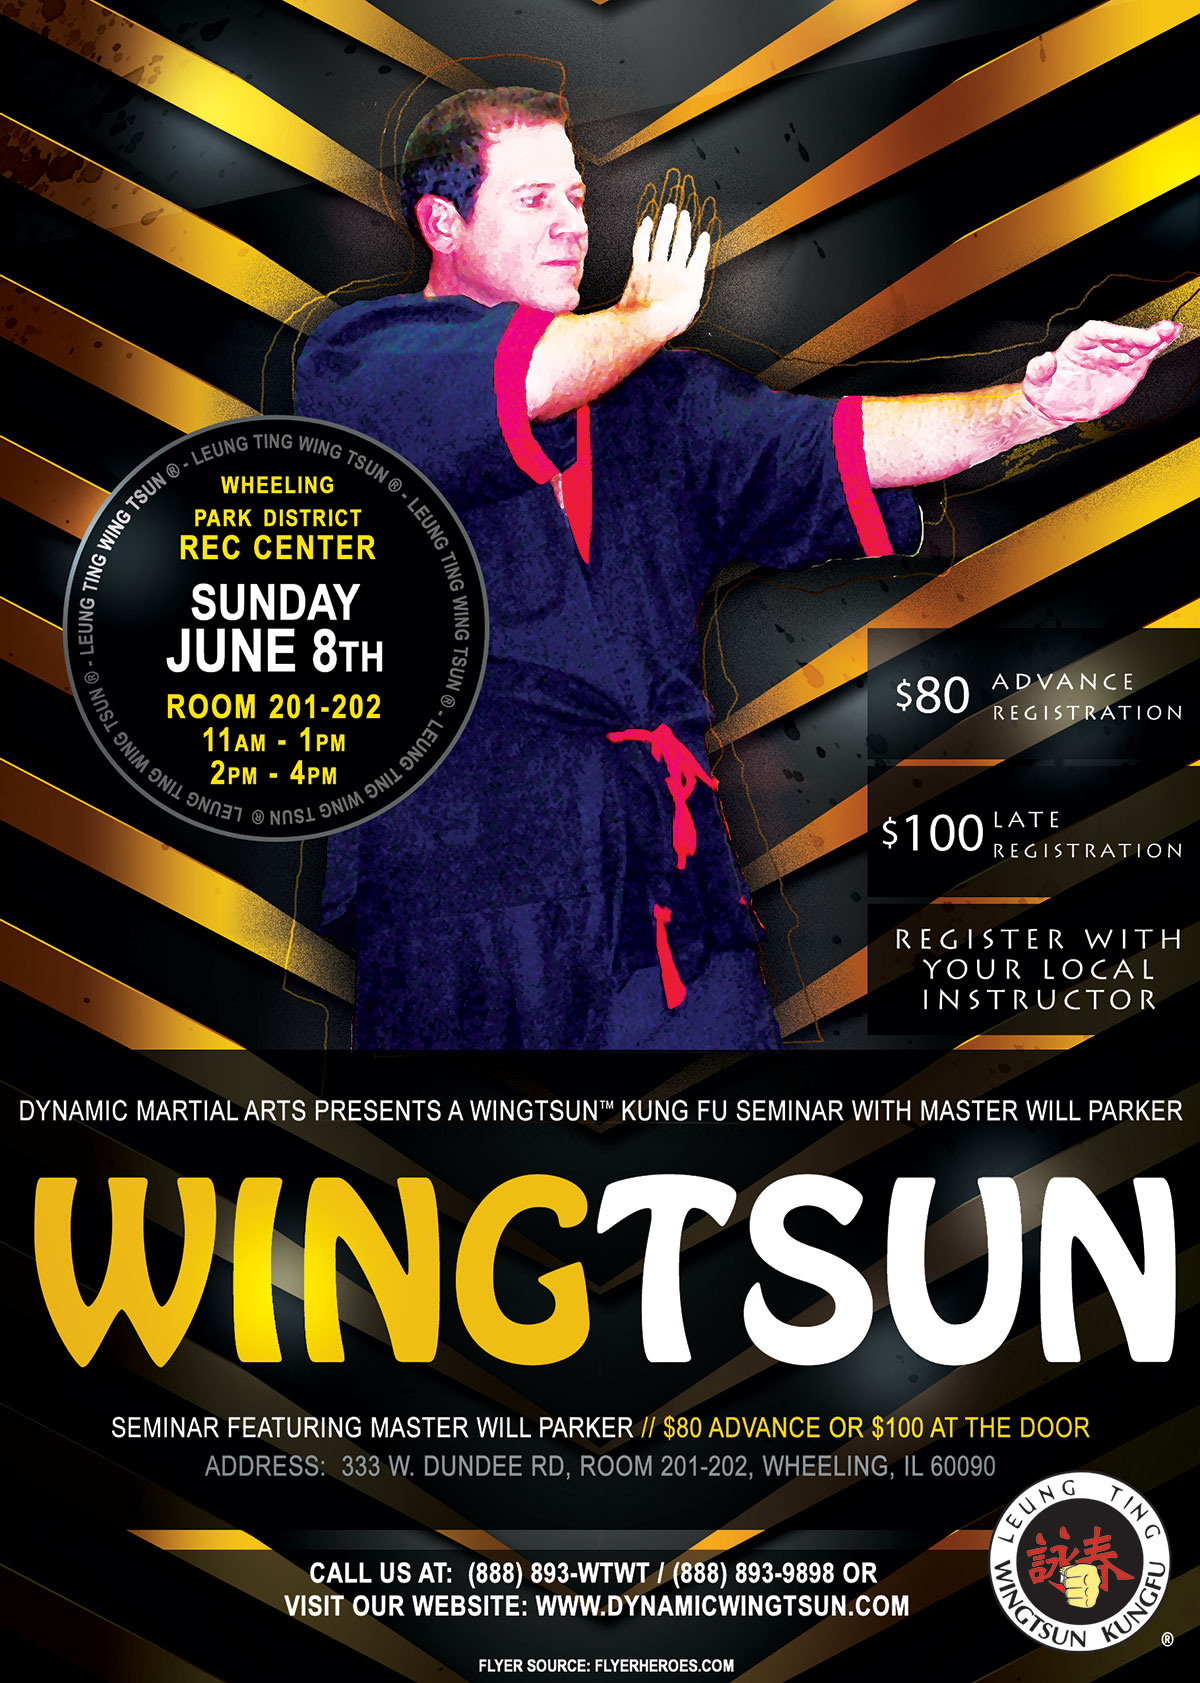 WingTsun Kung Fu Seminar with Master Will Parker in Chicago, June 8, 2014